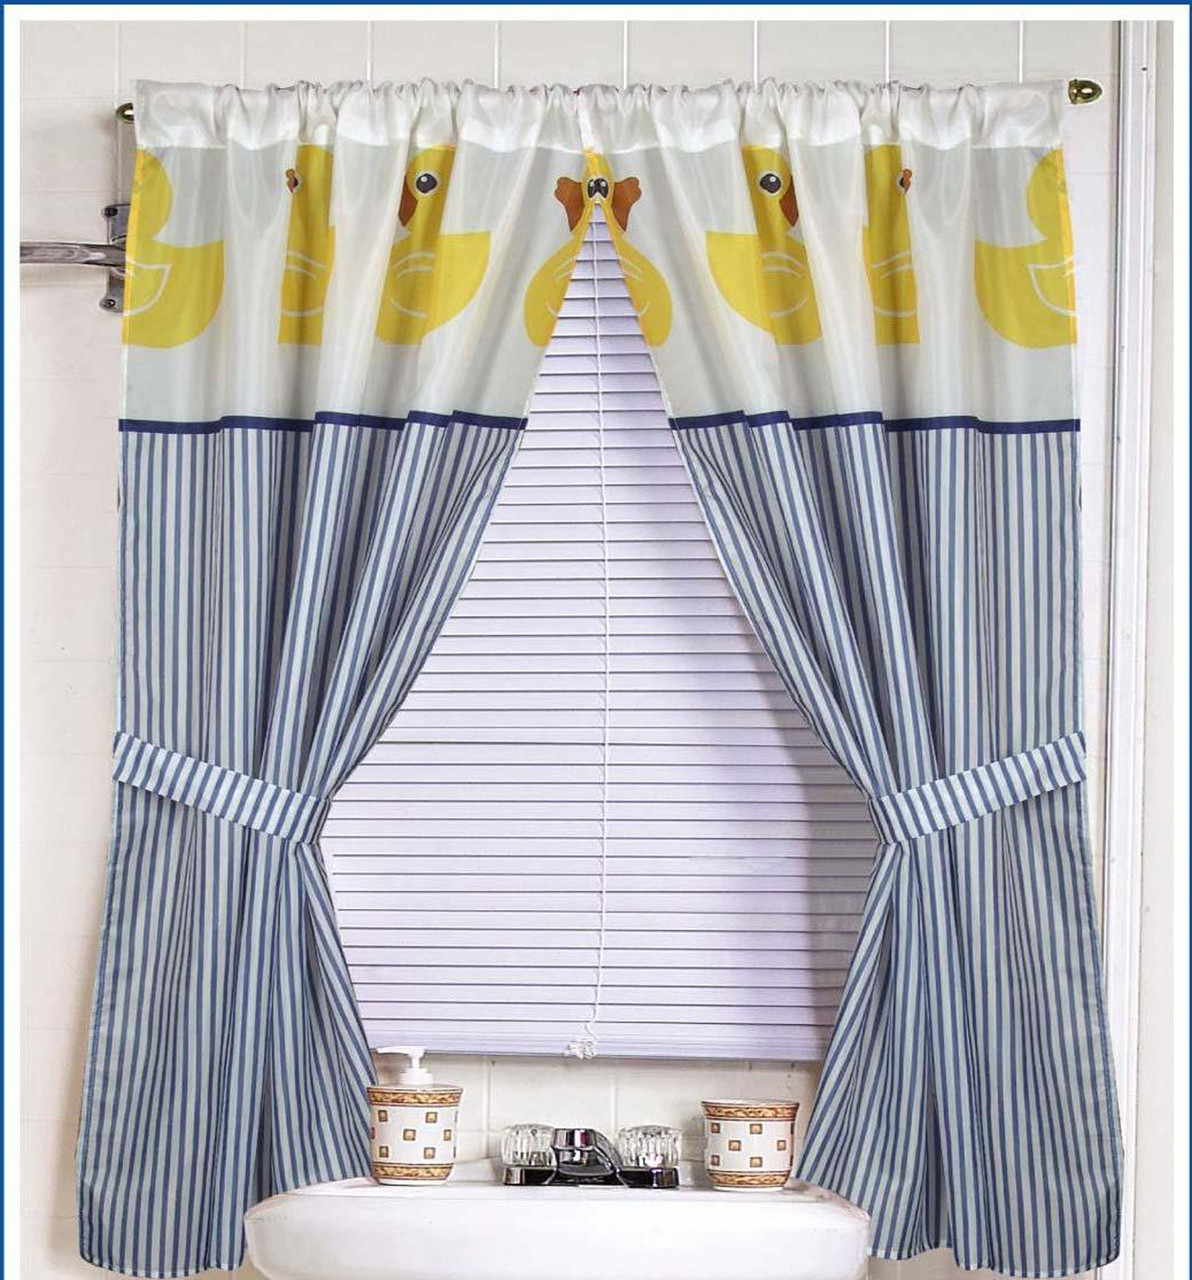 Rubber Ducky Fabric Window Curtain Linens4less Com